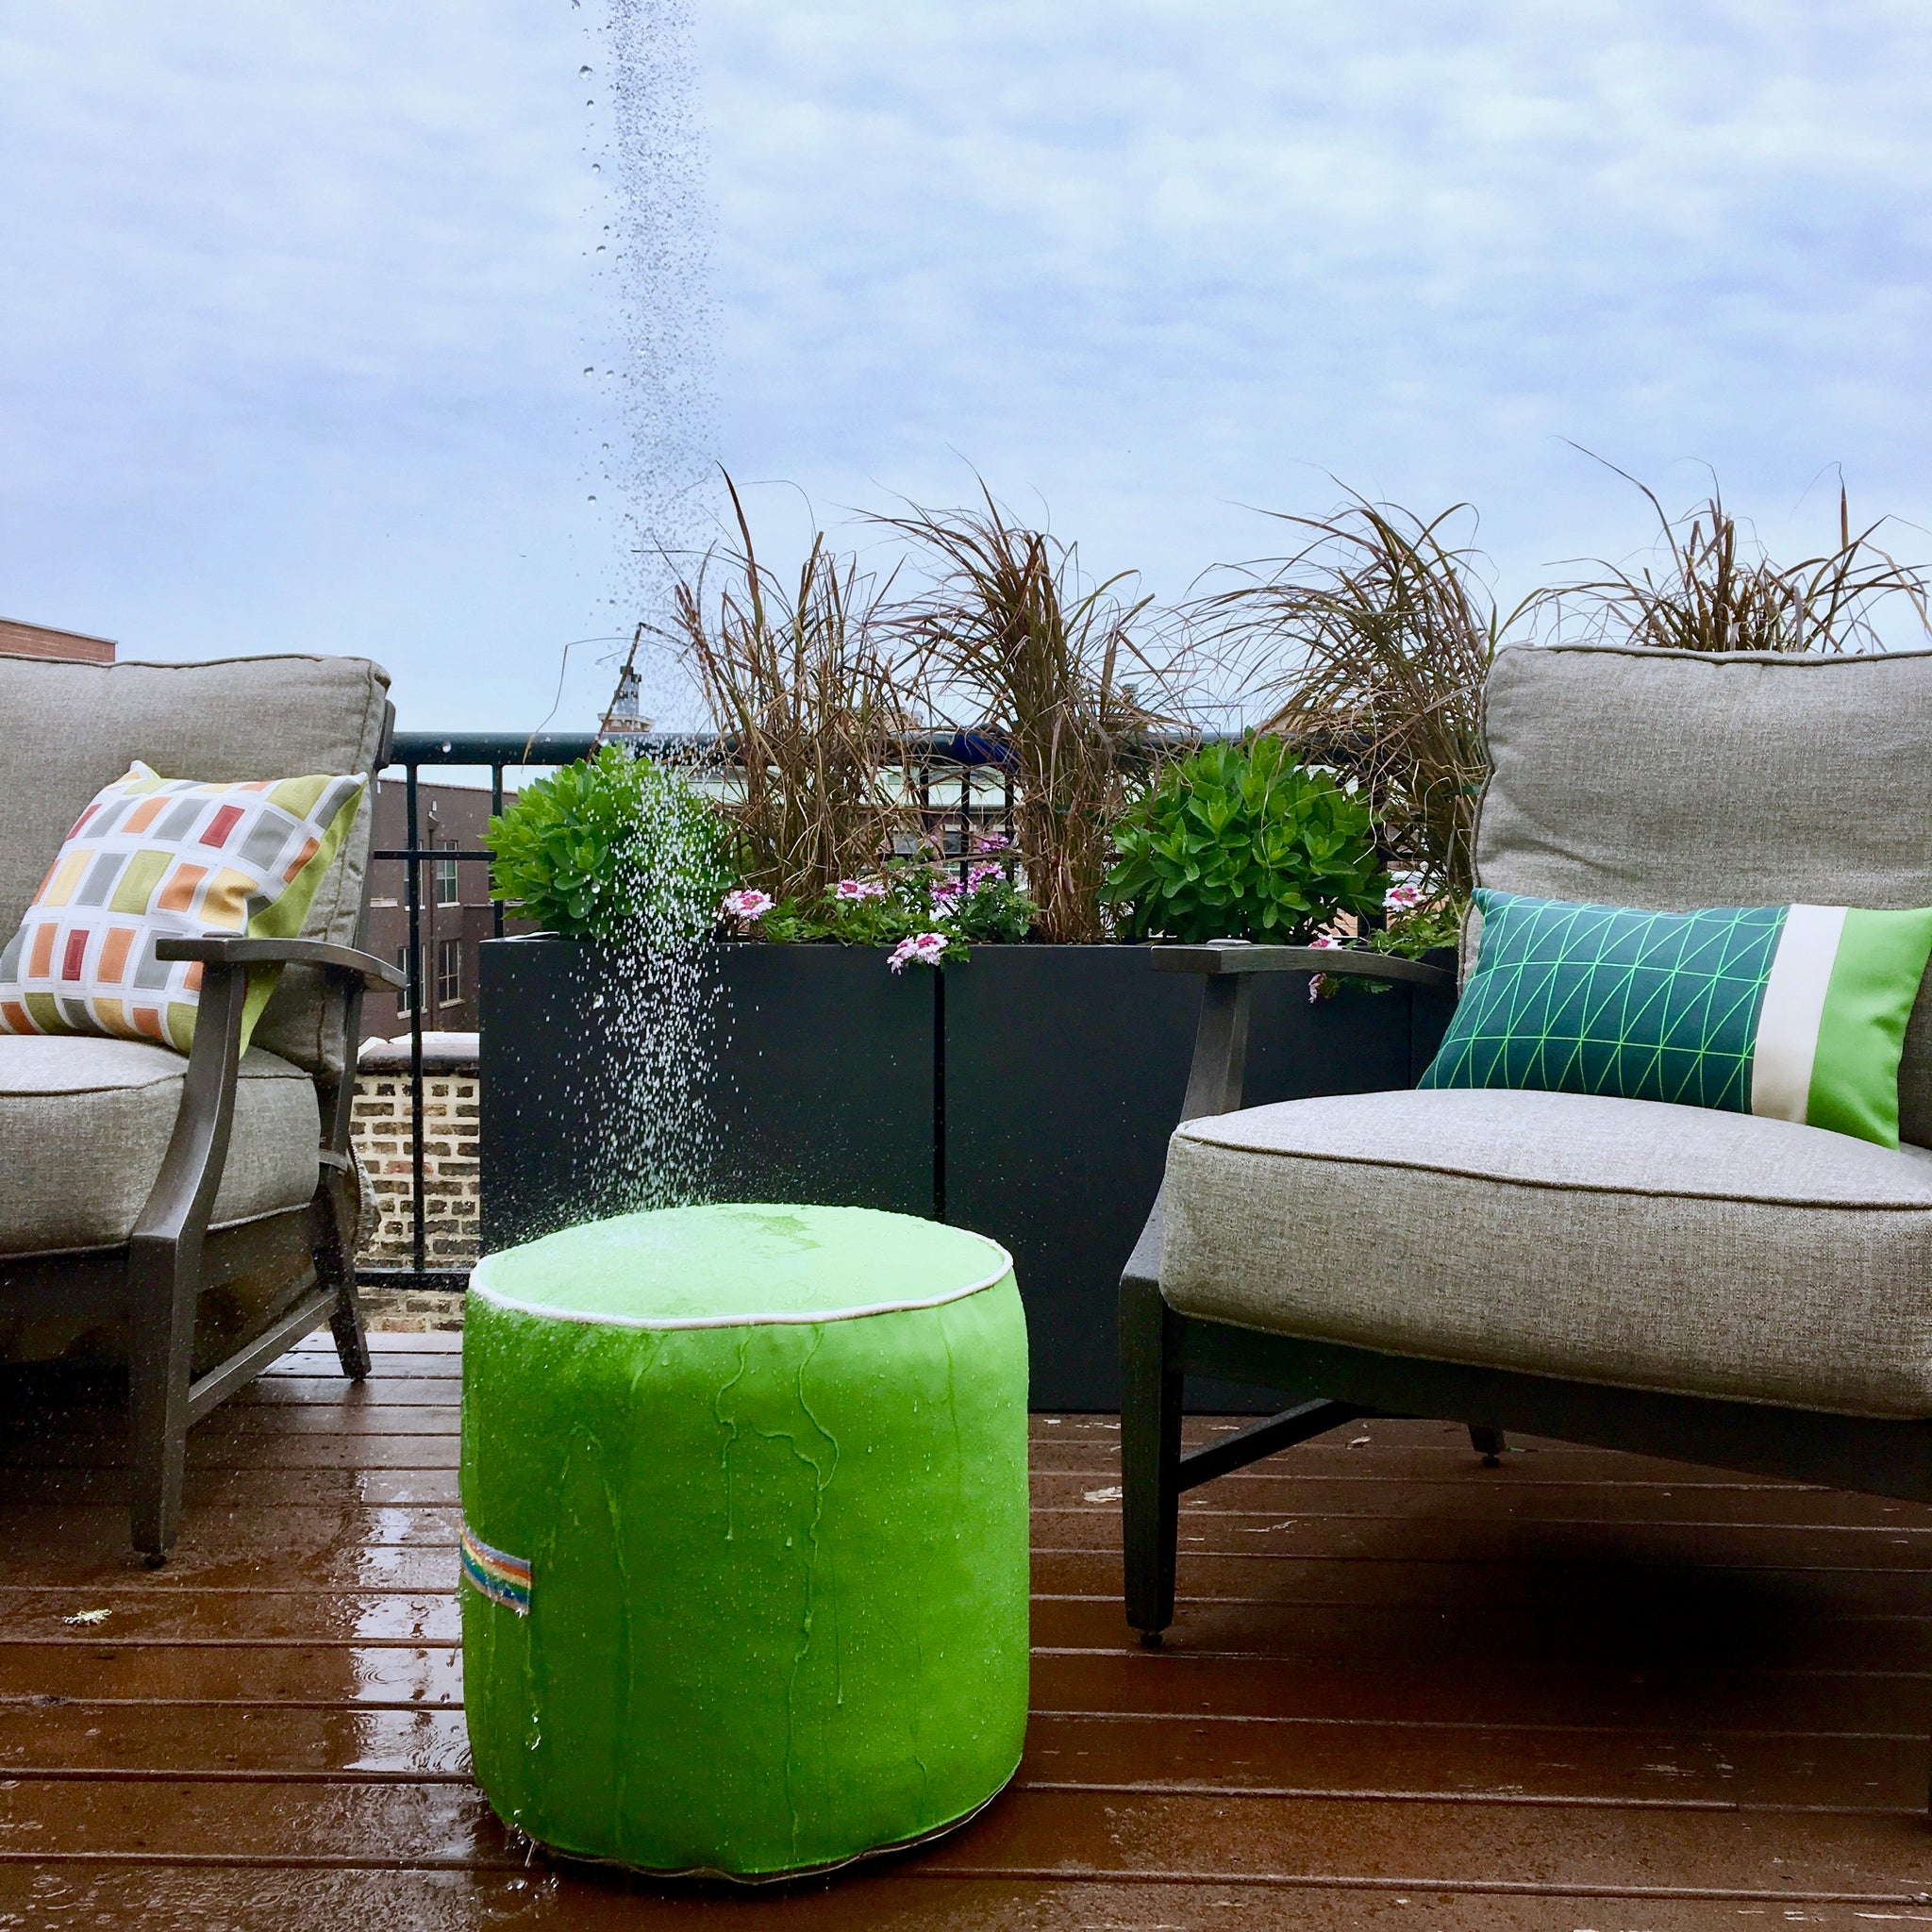 Waterproof outdoor pouf ottoman | Bright Green vinyl | Handmade